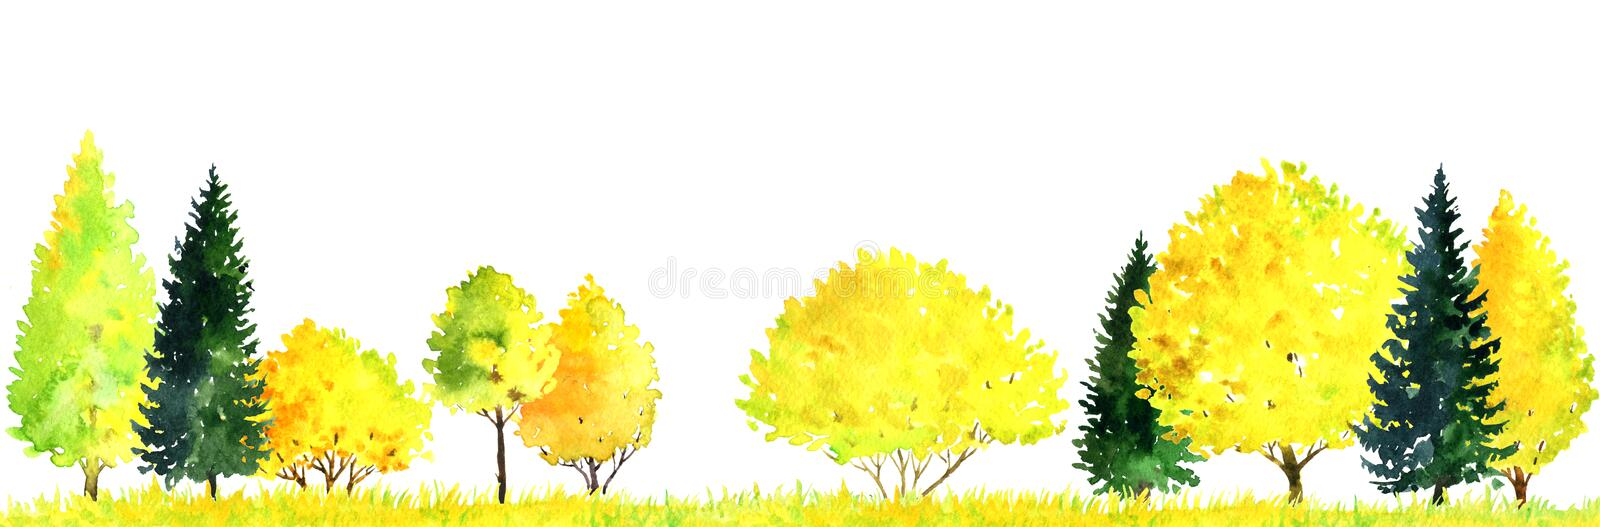 Watercolor landscape with trees royalty free illustration